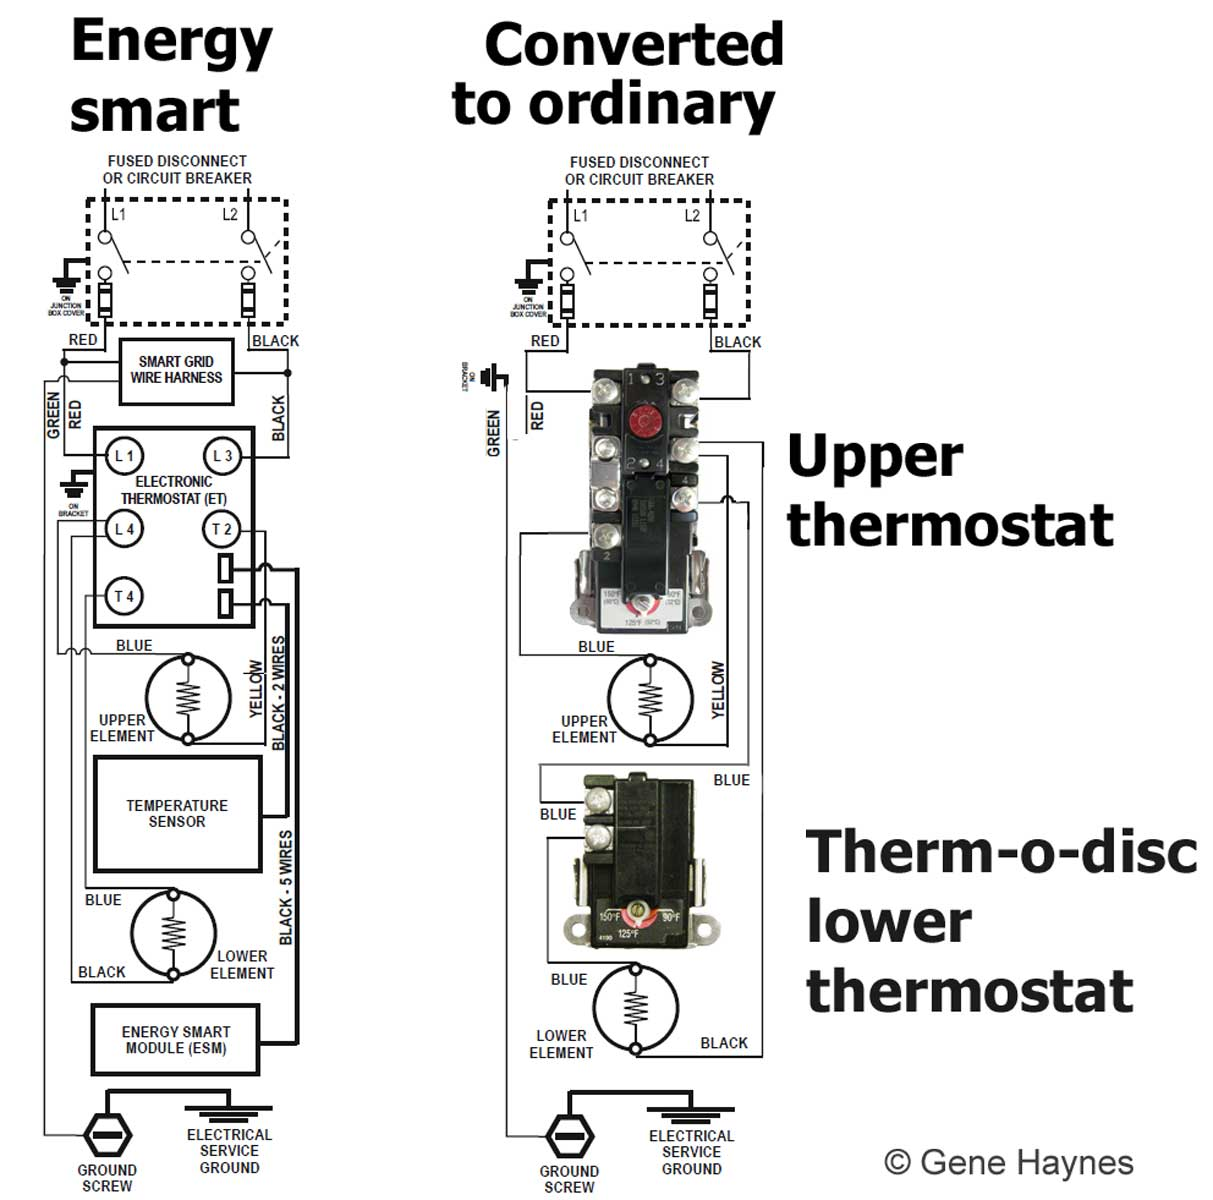 How To Convert Energy Smart Water Heater Ordinary Wiring Larger Image